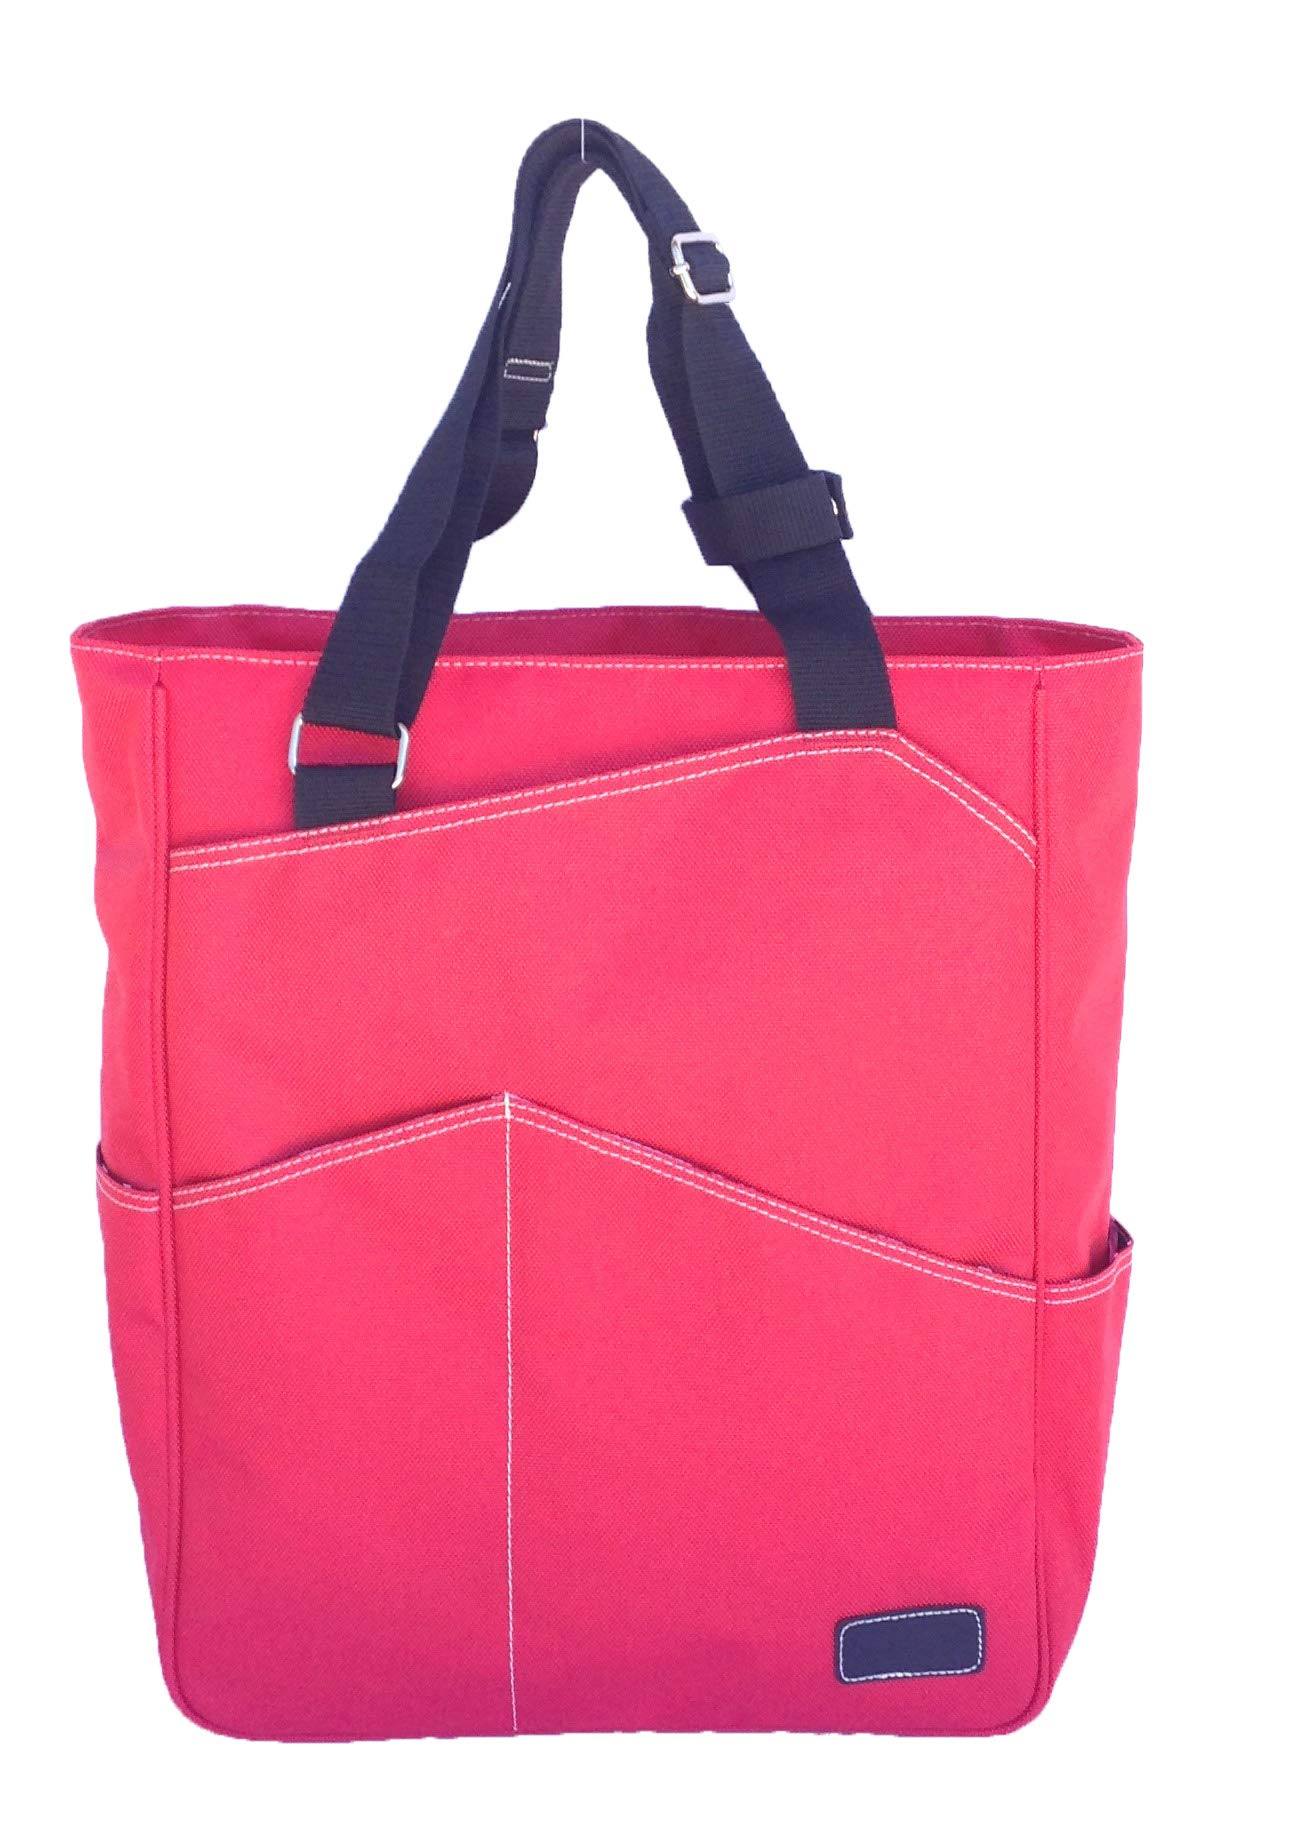 Maggie Mather Tennis Tote, Travel Tote (Coral) New Zipper Closure